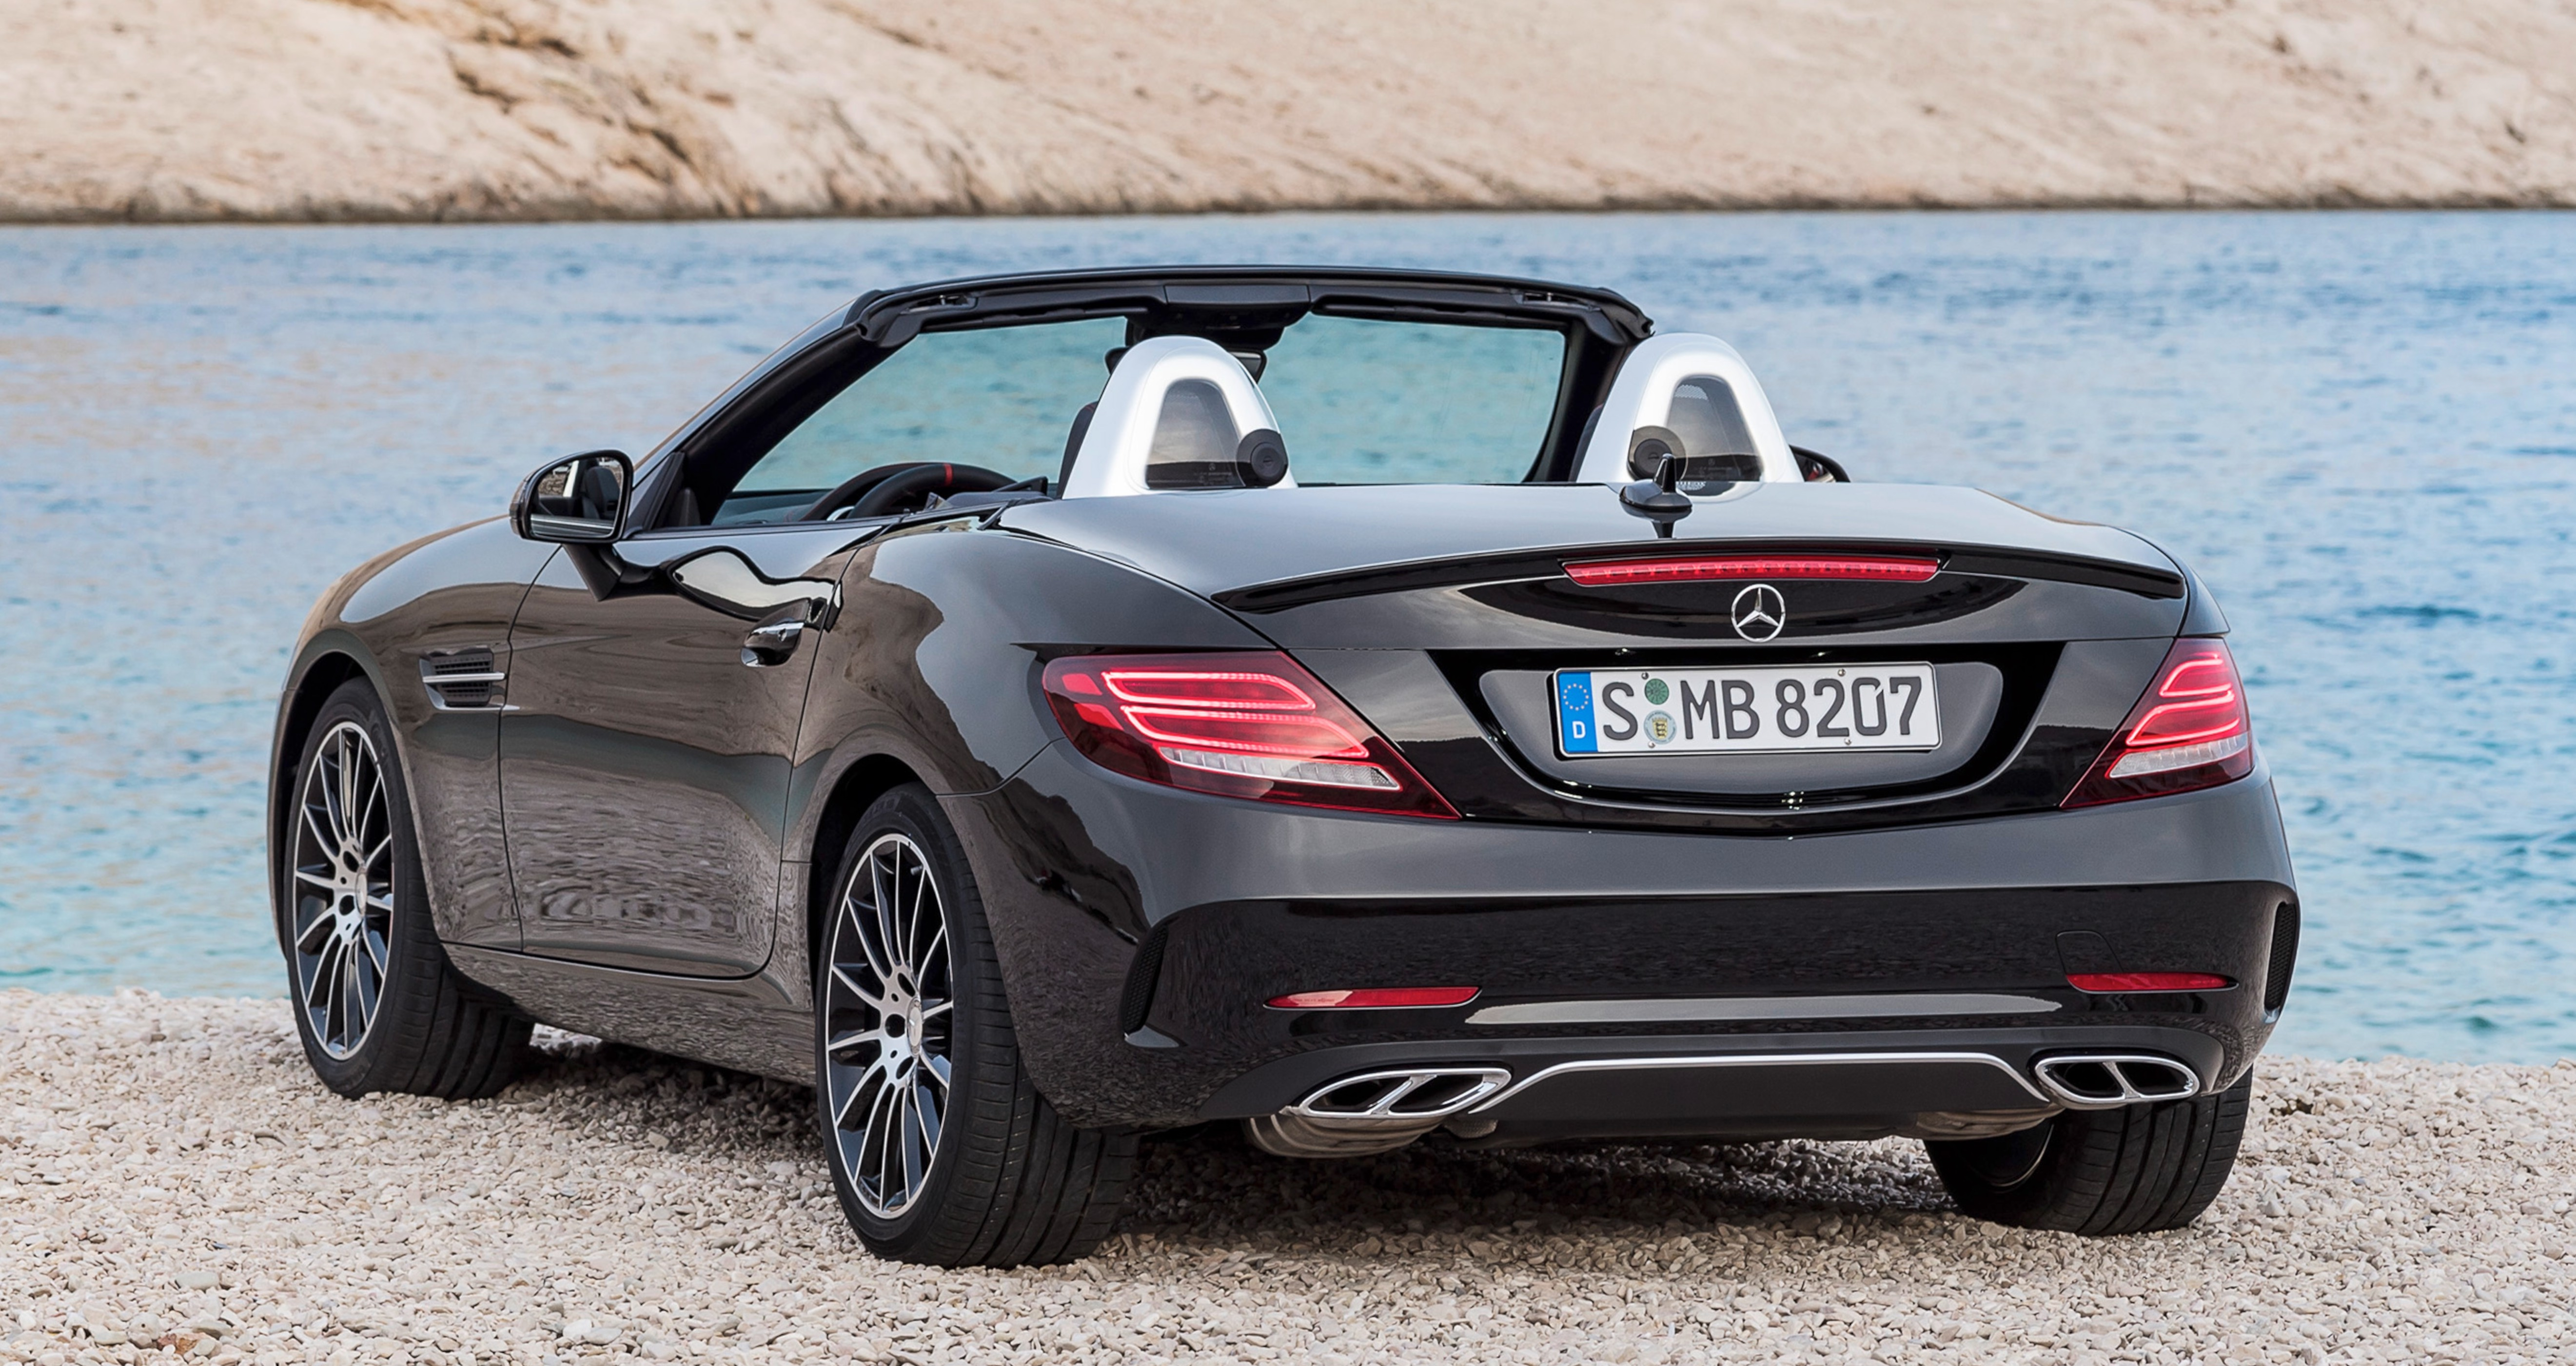 Mercedes-AMG SLC 43 gets downsized 3.0 V6 biturbo Image 419695